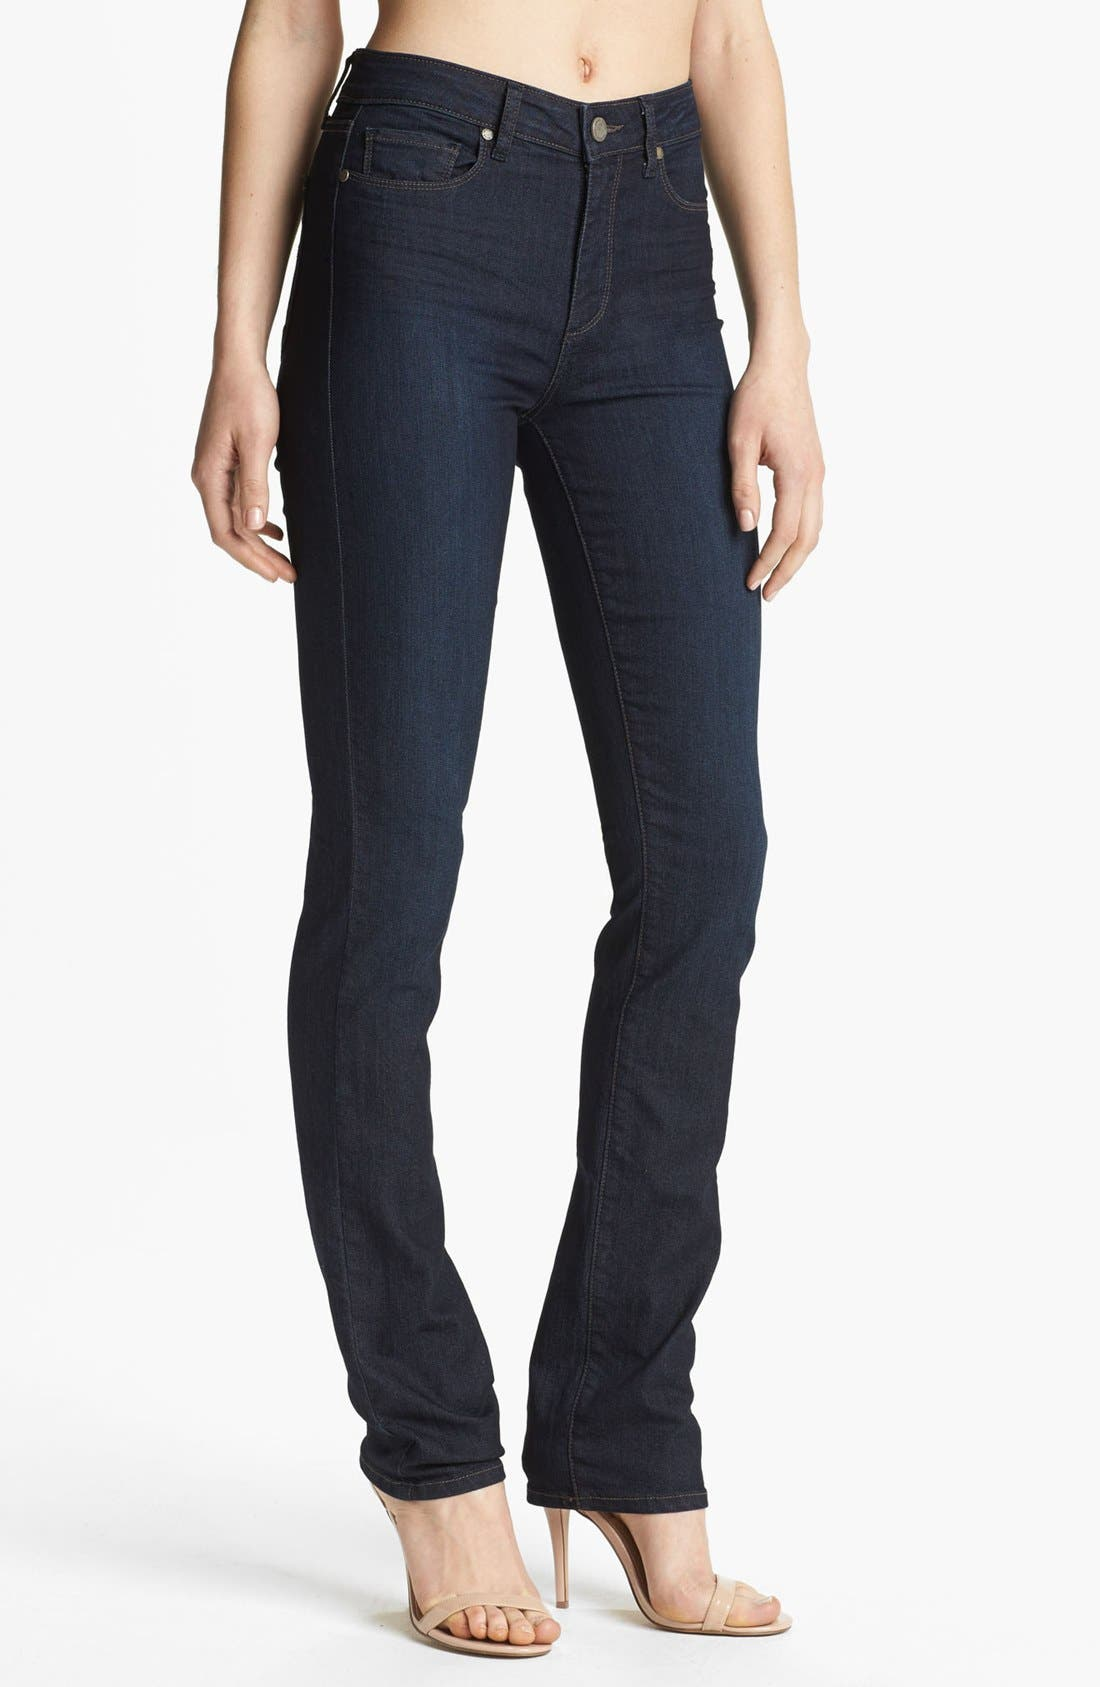 Alternate Image 1 Selected - Paige Denim 'Hoxton' High Rise Straight Leg Jeans (Kelly)